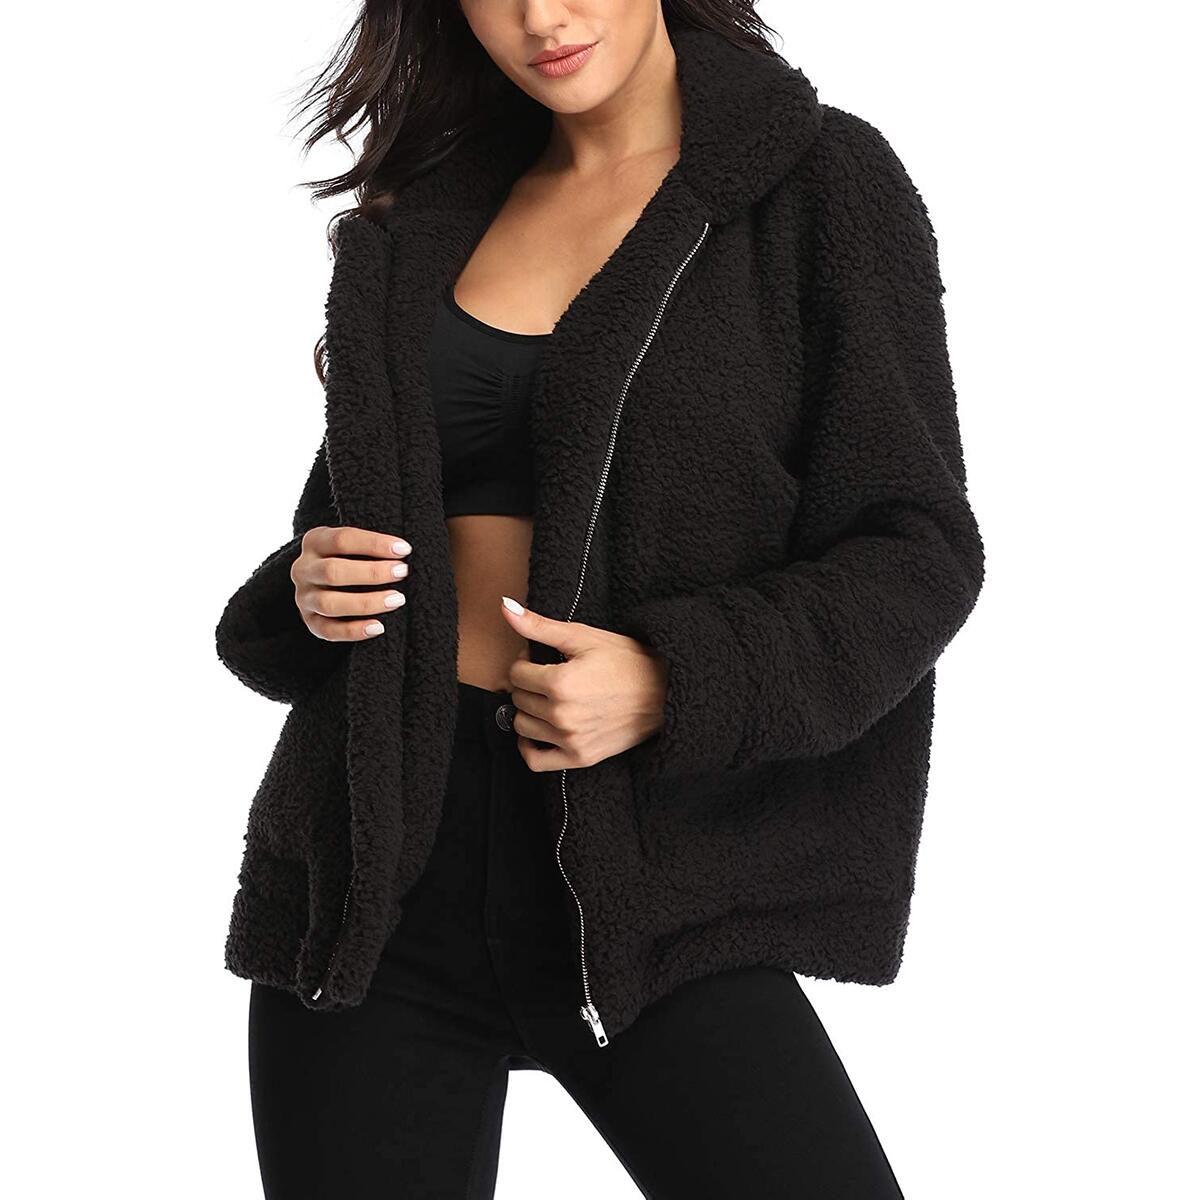 Women's Teddy Bear Sherpa Jacket Coat Warm Winter Faux Fur Shearling Jacket Coat with Pocket(Multi Variation Applied )